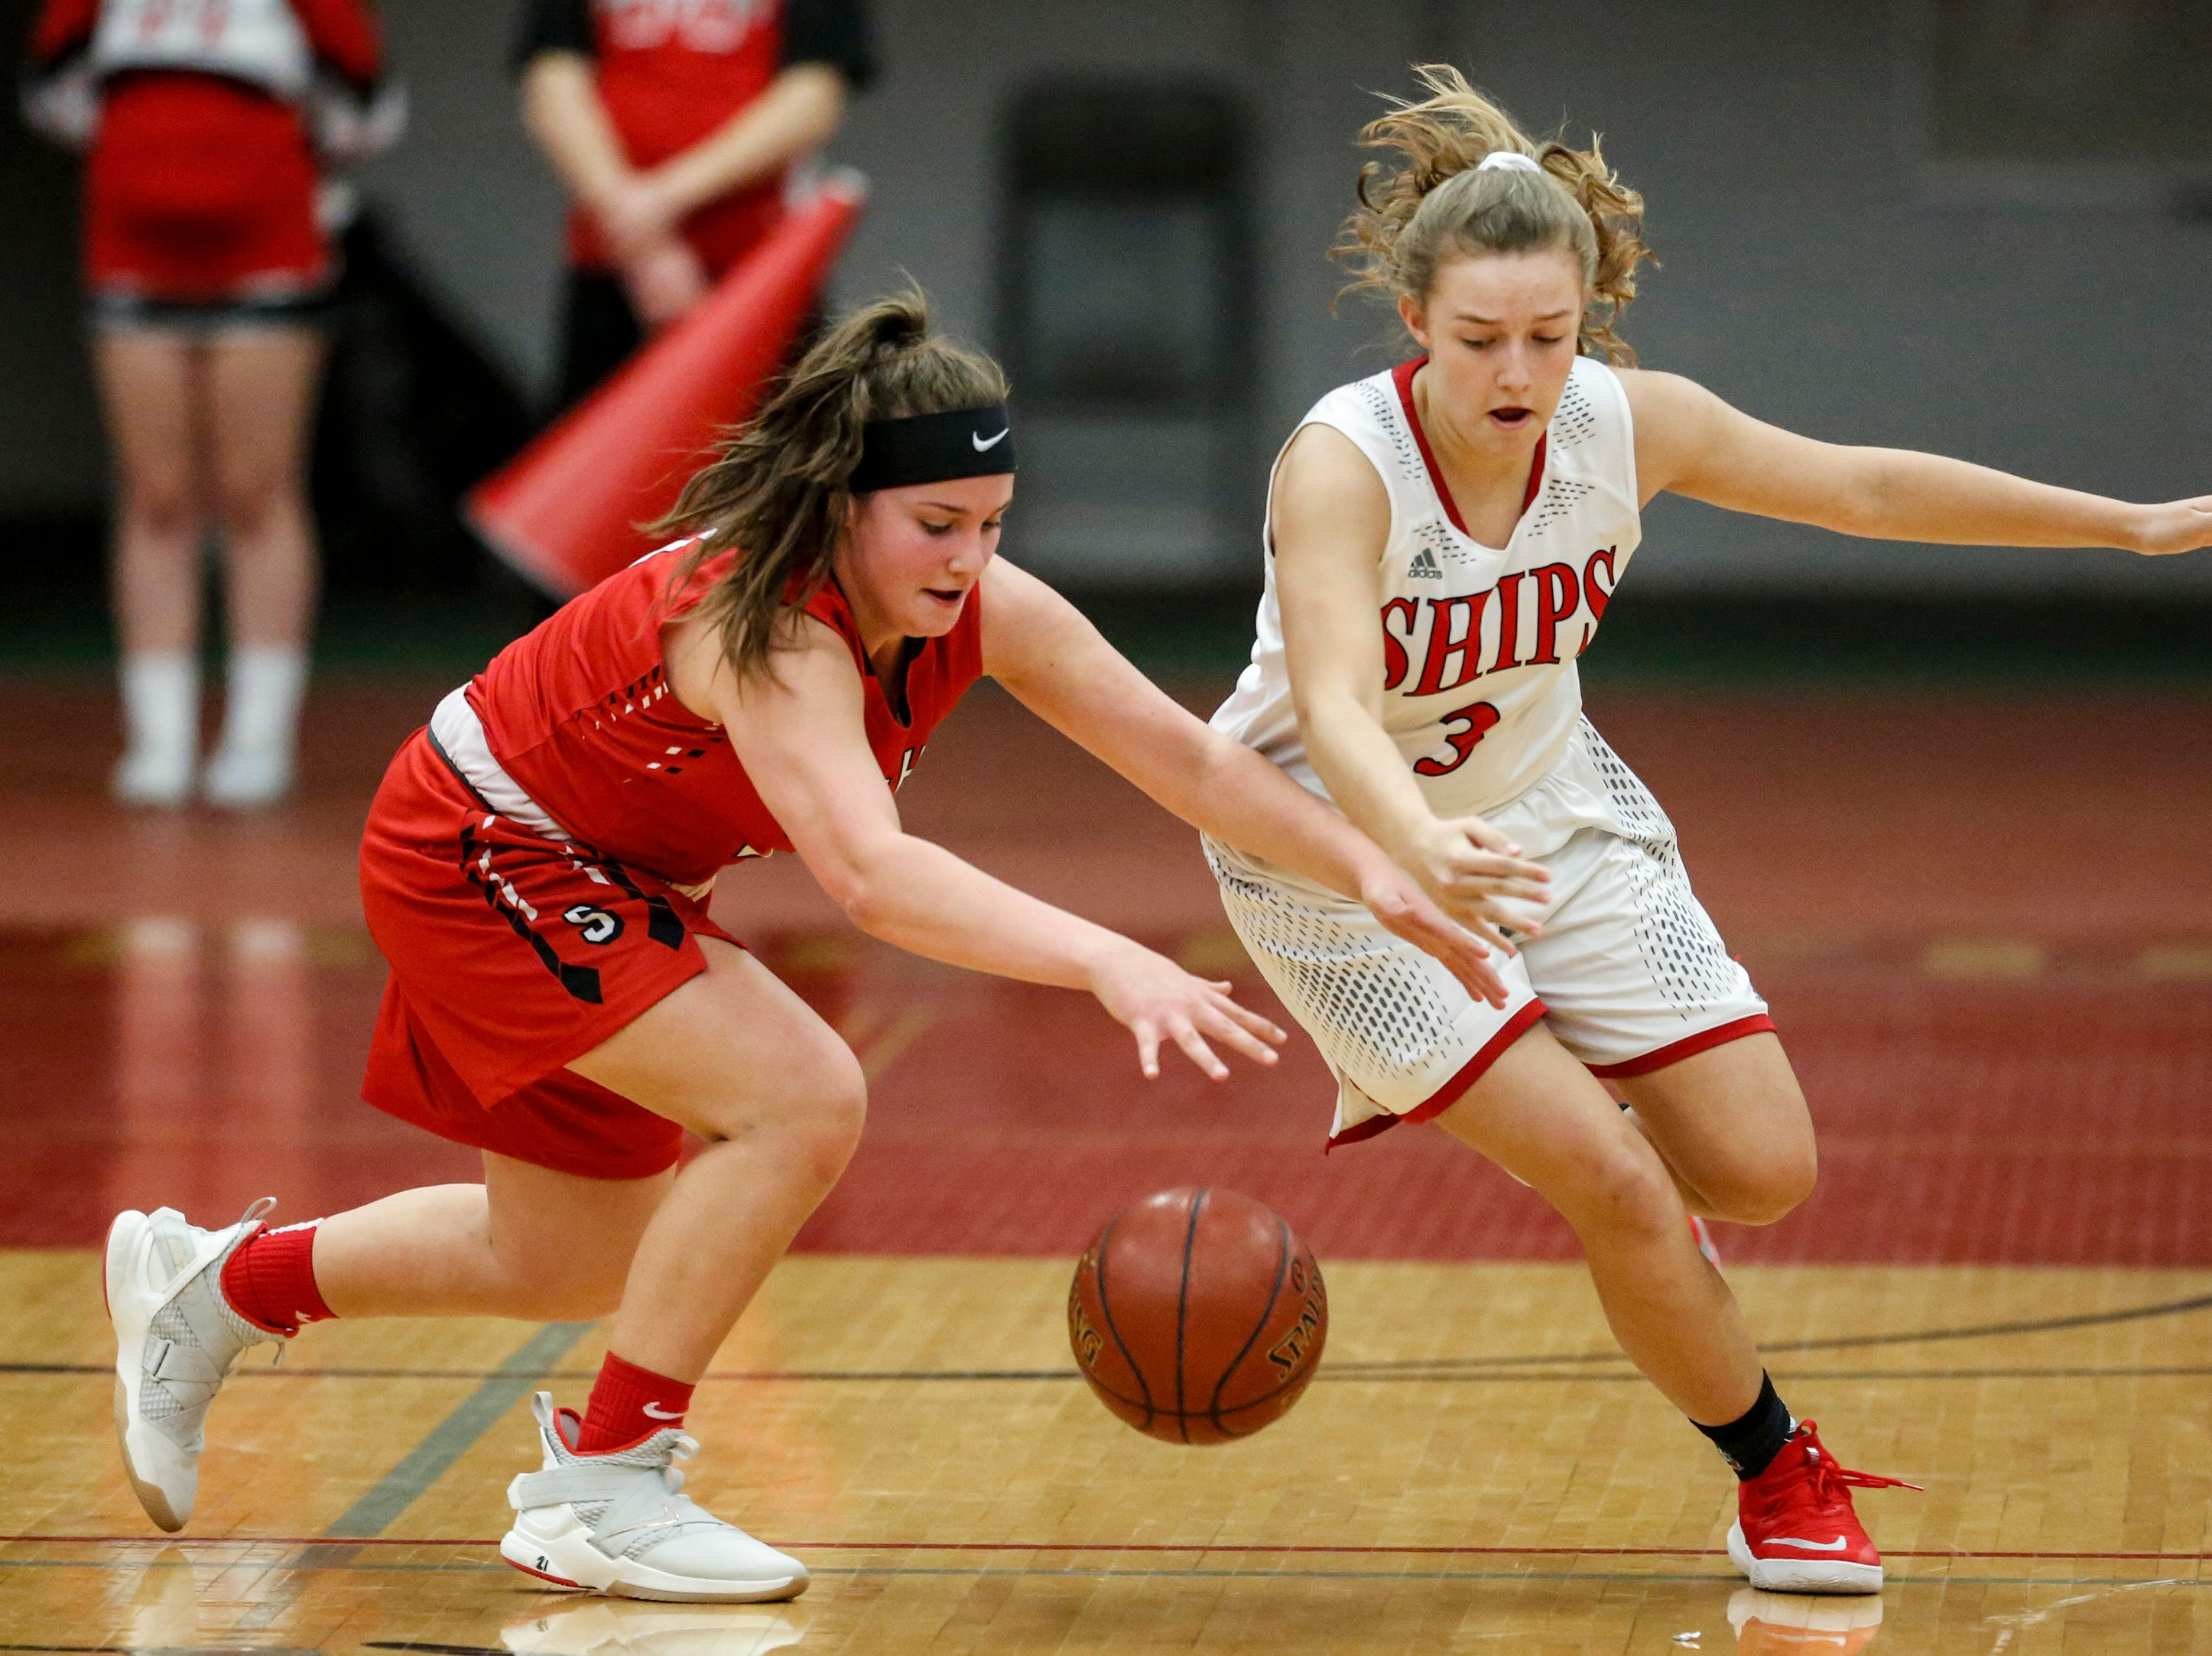 Manitowoc Lincoln's Lauren Delmore swipes the ball away from Sheboygan South's Dina Bushi (21) during an FRCC matchup at Manitowoc Lincoln High School Friday, January 4, 2019, in Manitowoc, Wis. Joshua Clark/USA TODAY NETWORK-Wisconsin